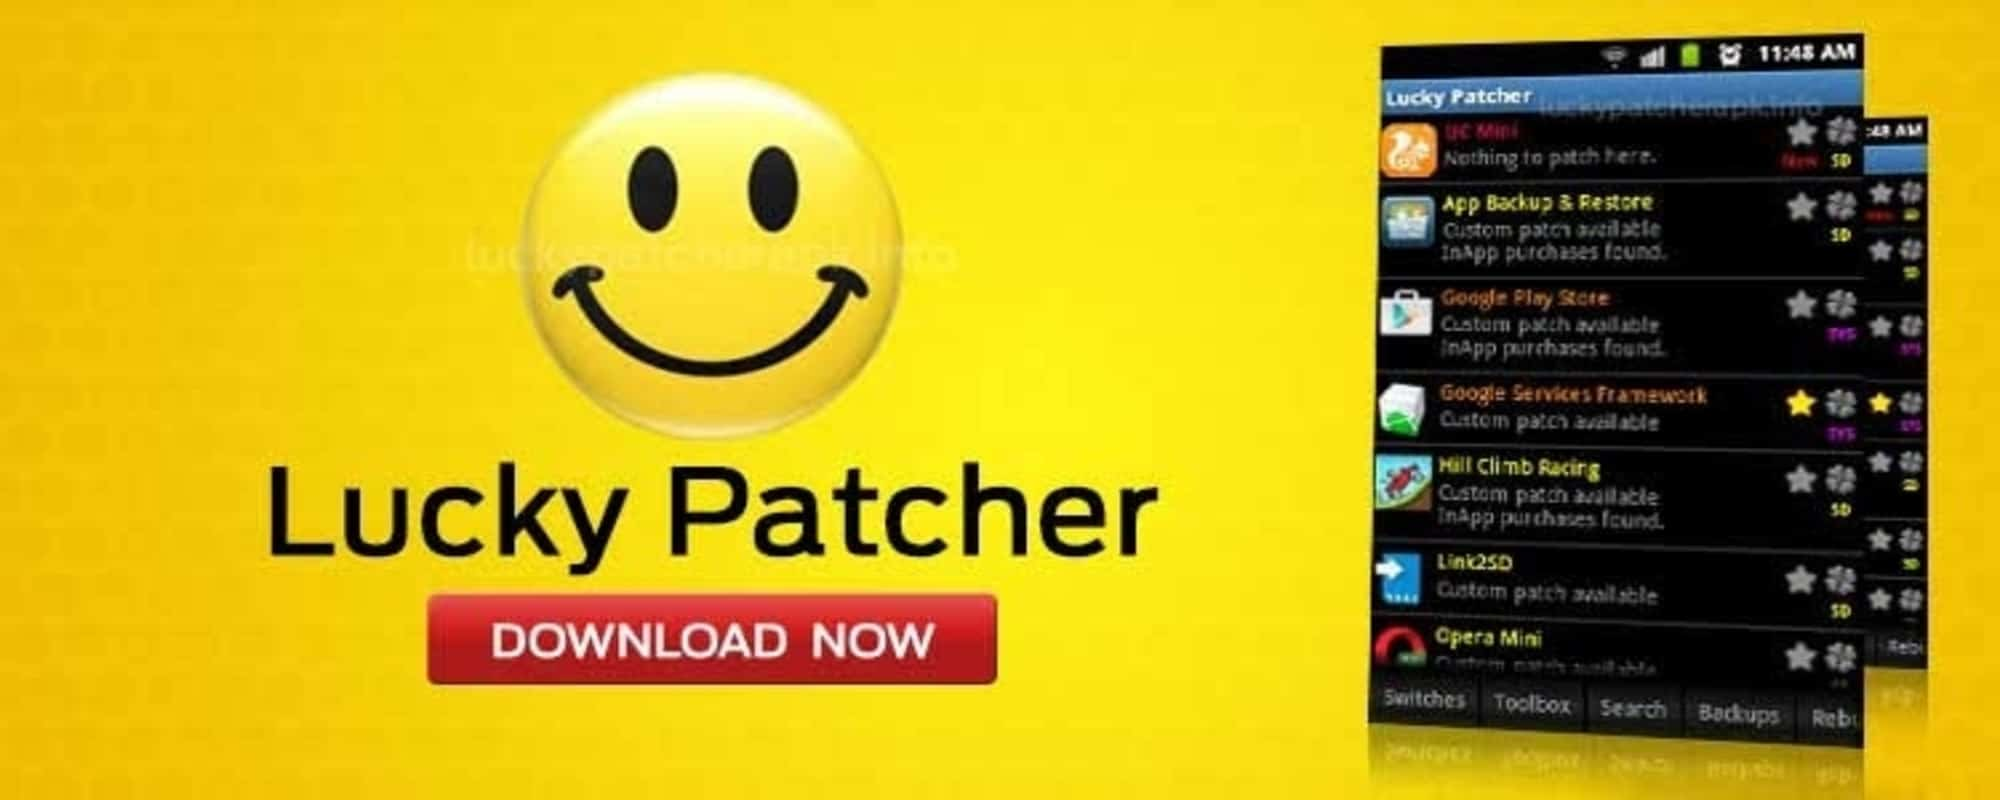 Lucky-Patcher-App